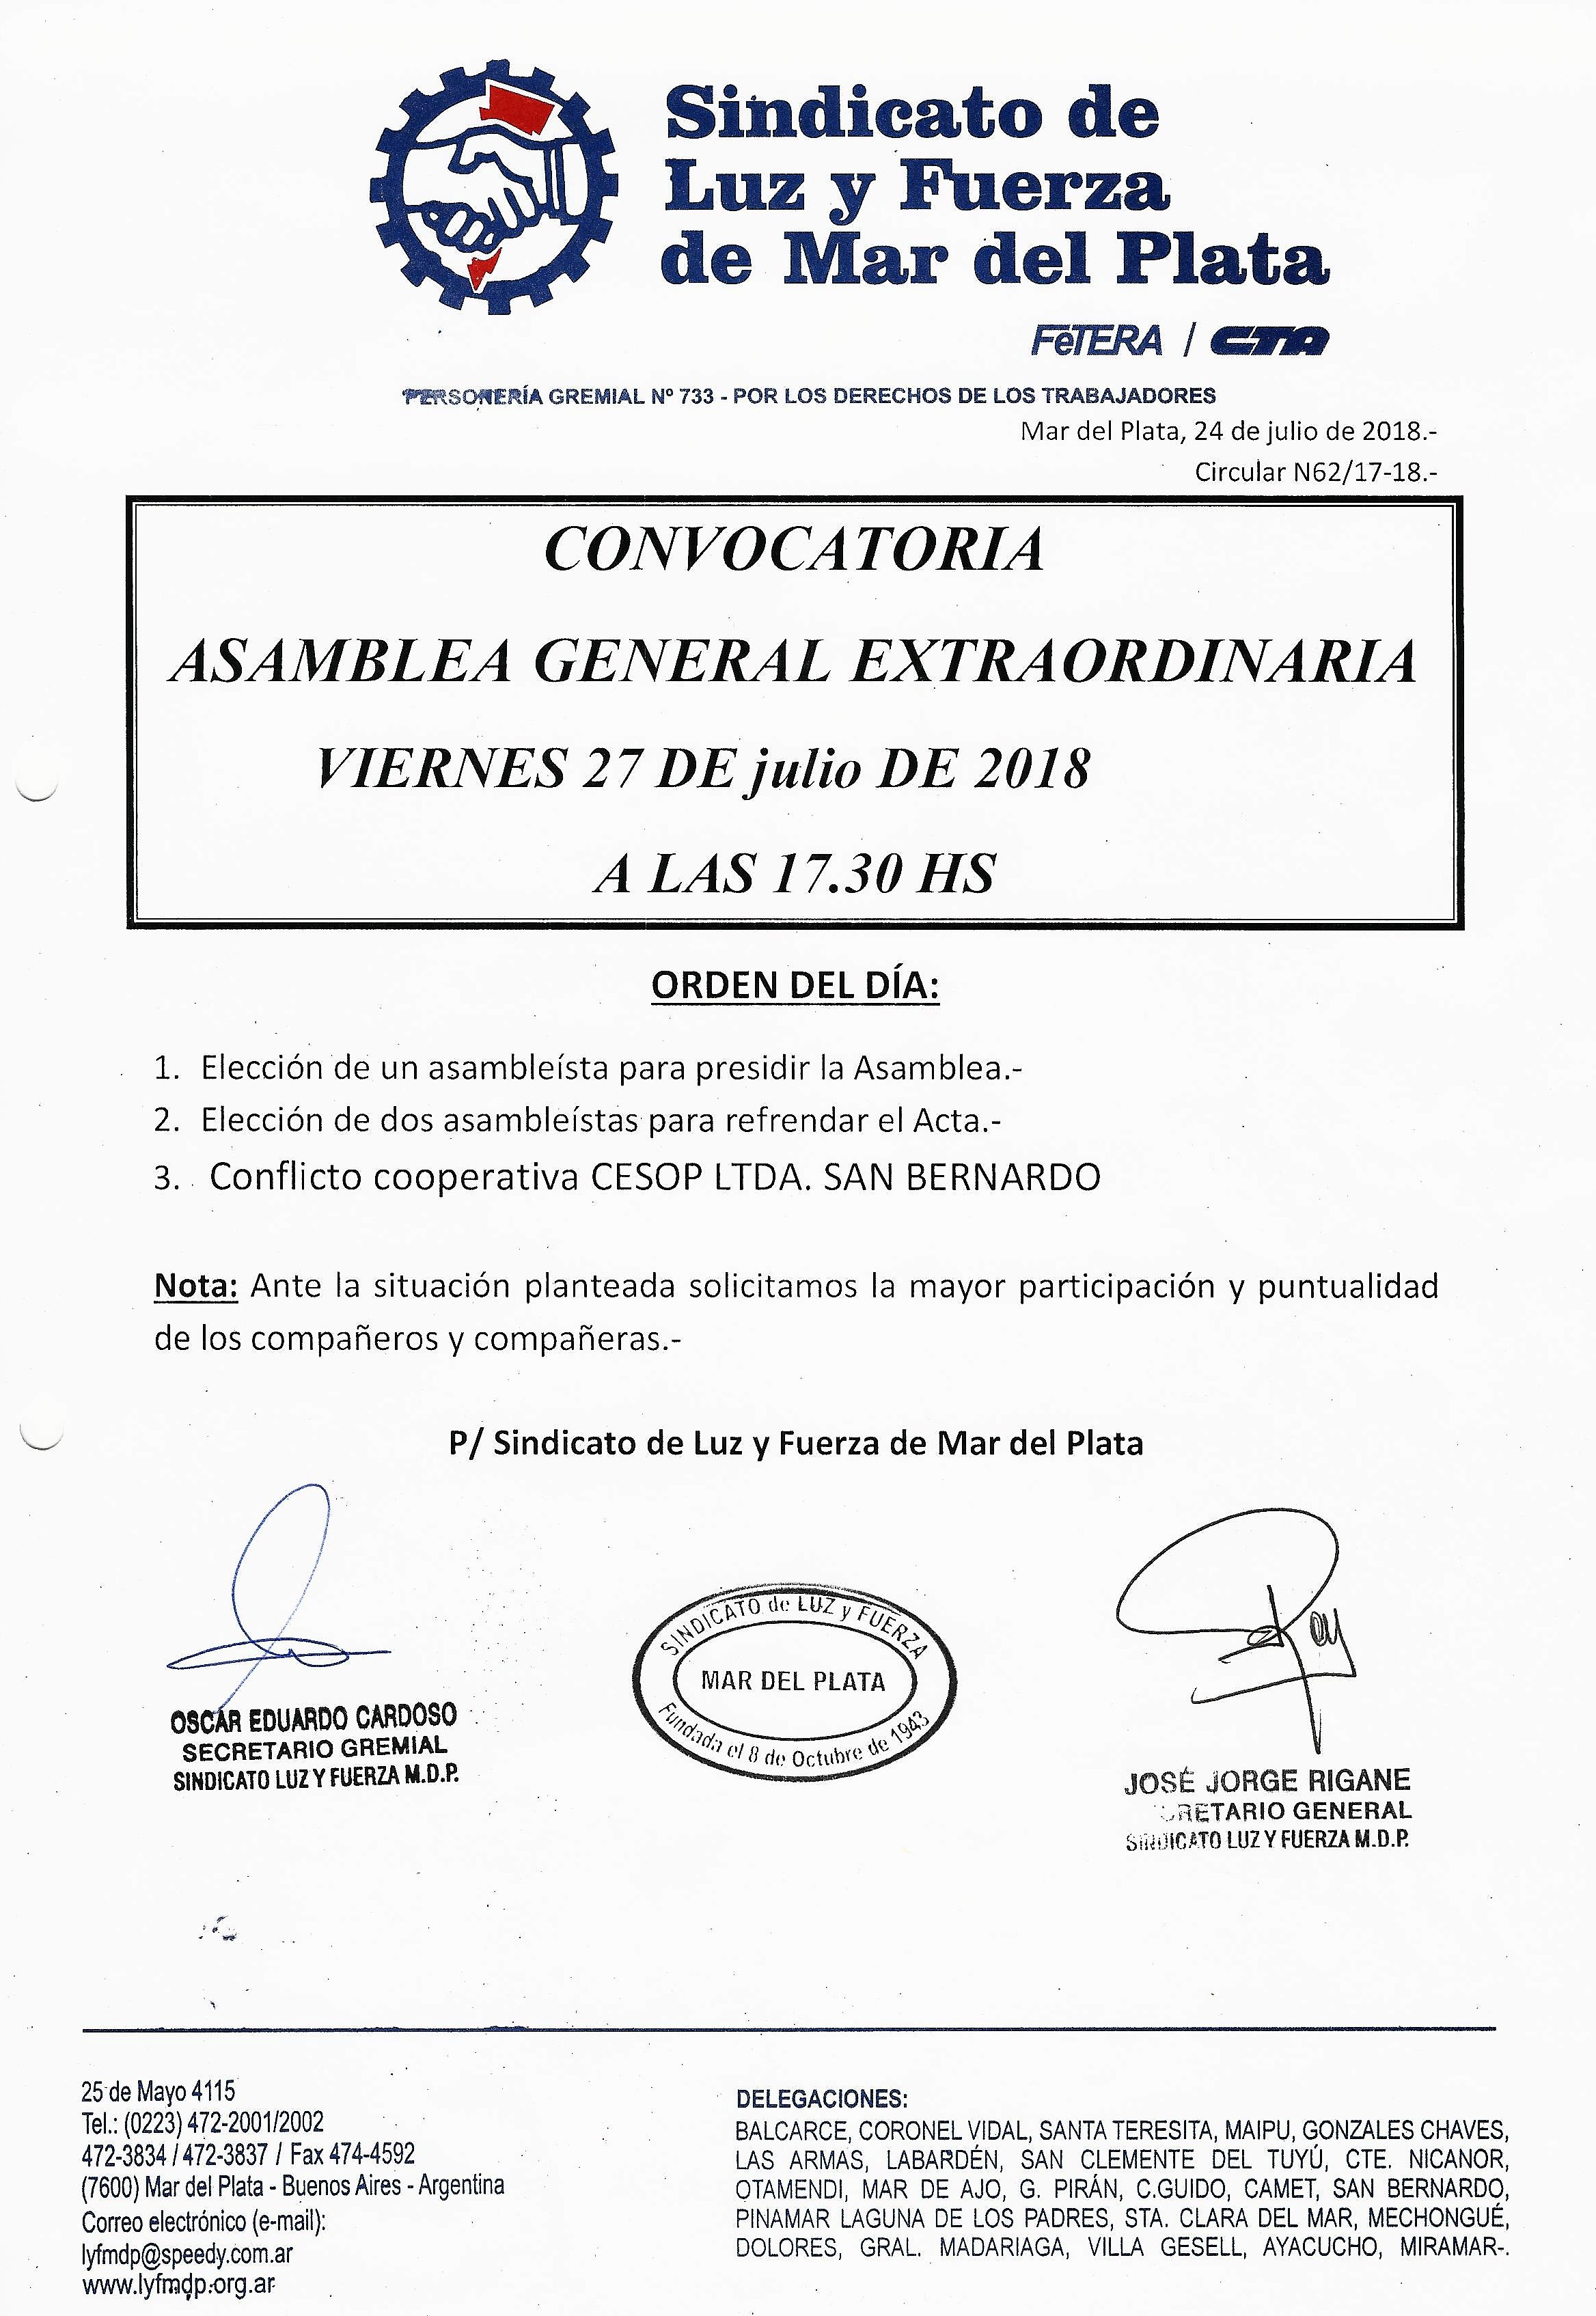 CONVOCATORIA ASAMBLEA GENERAL EXTRAORDINARIA 27-7-18